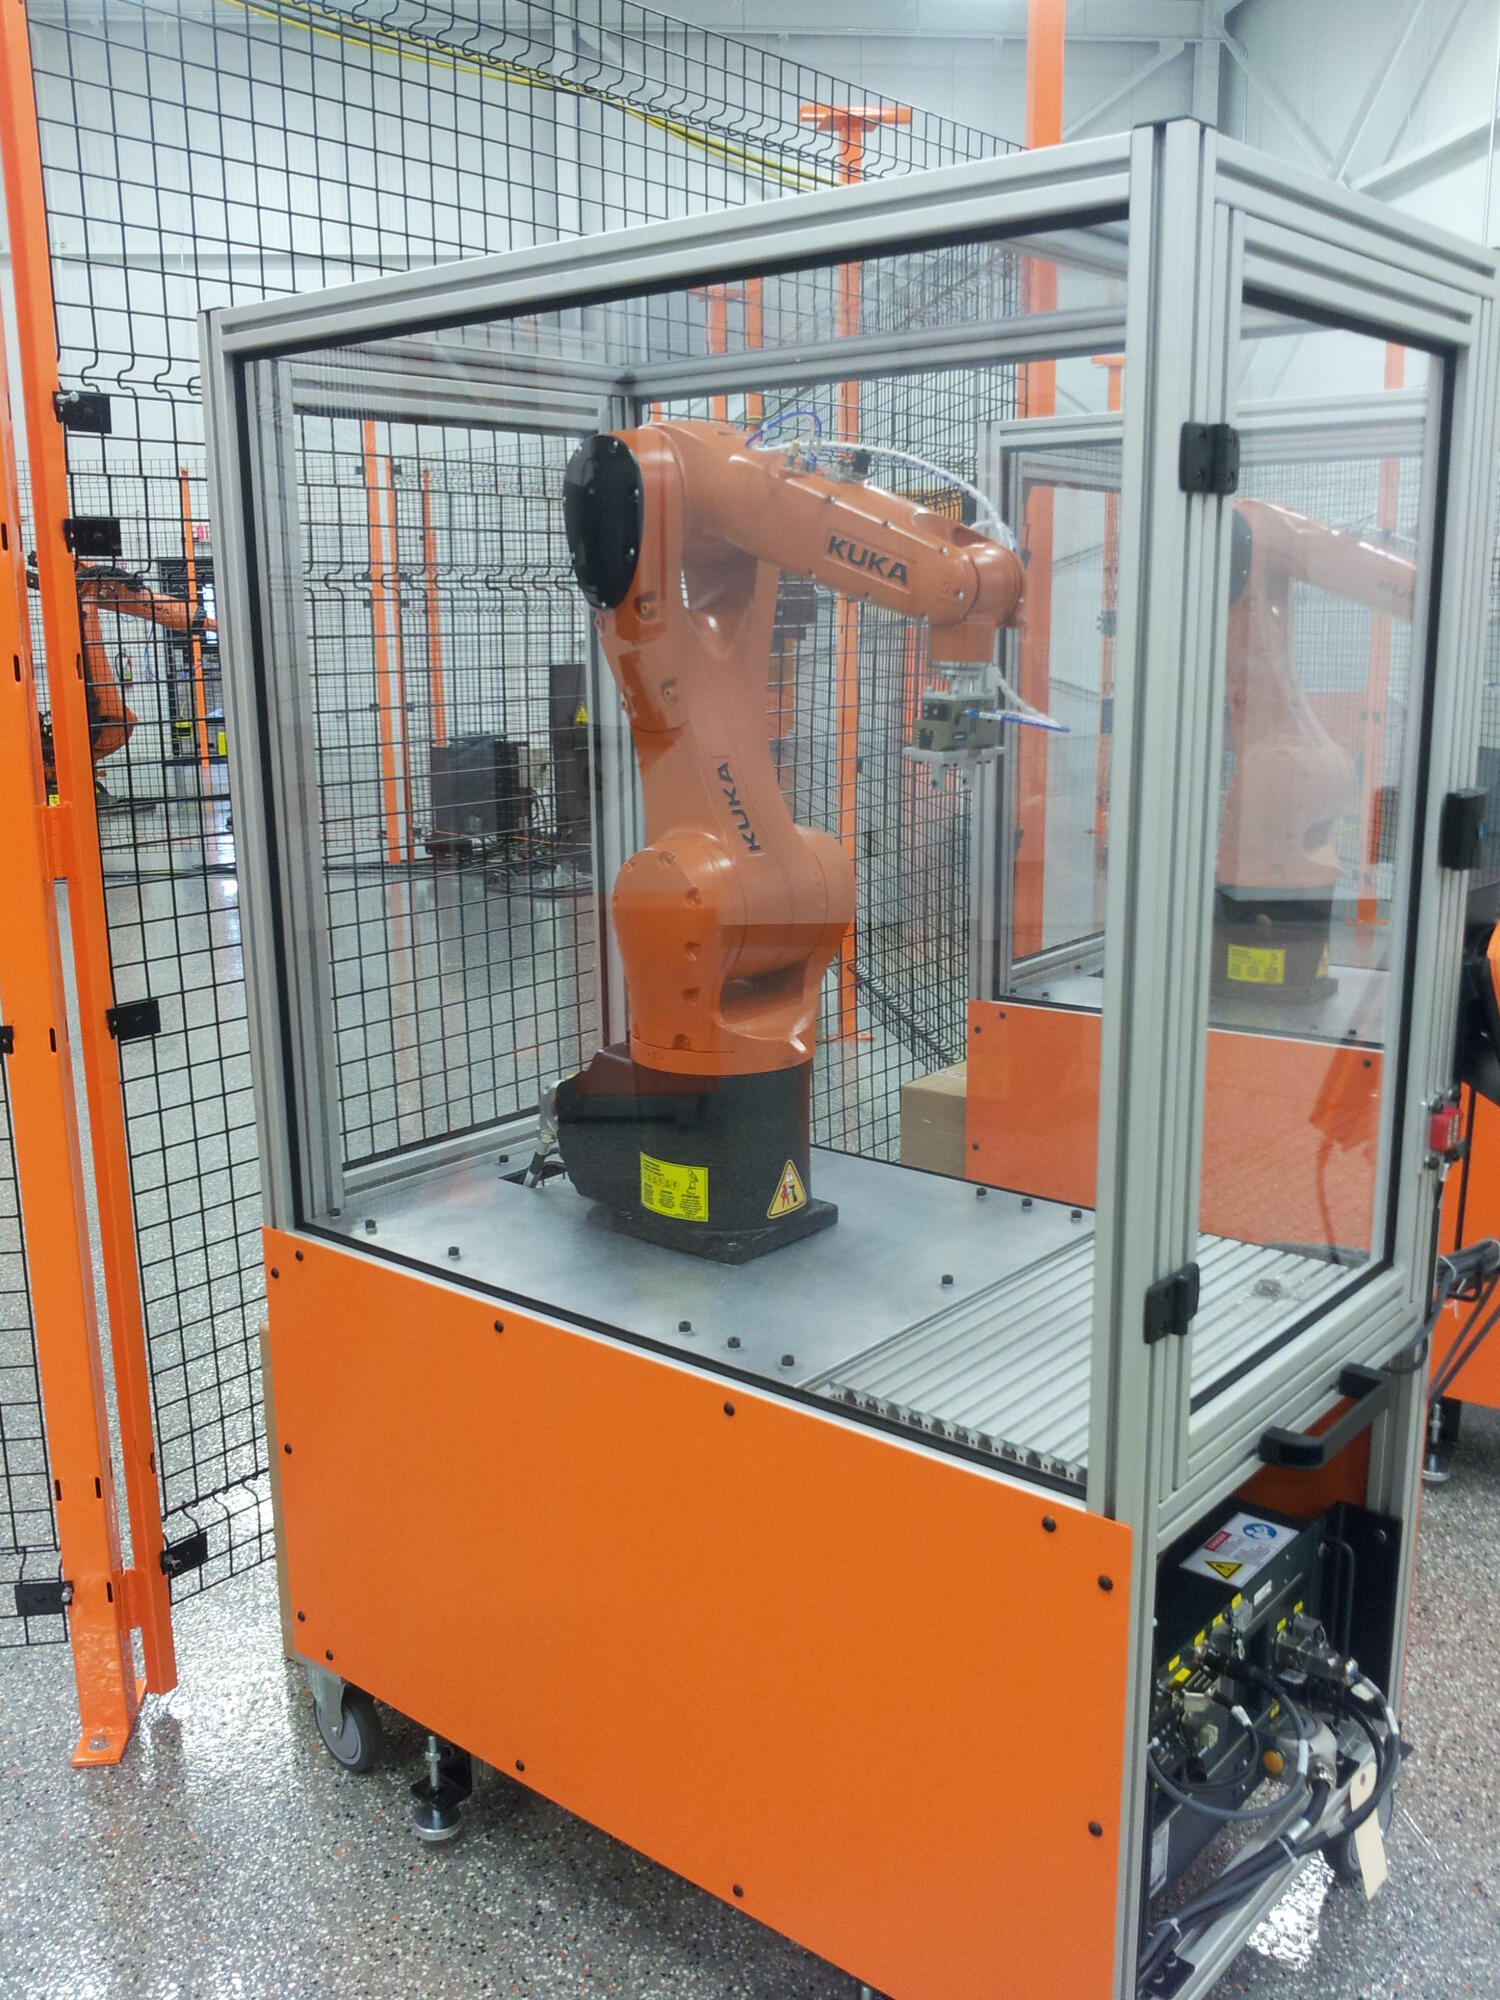 Kuka Burton Educational Cart